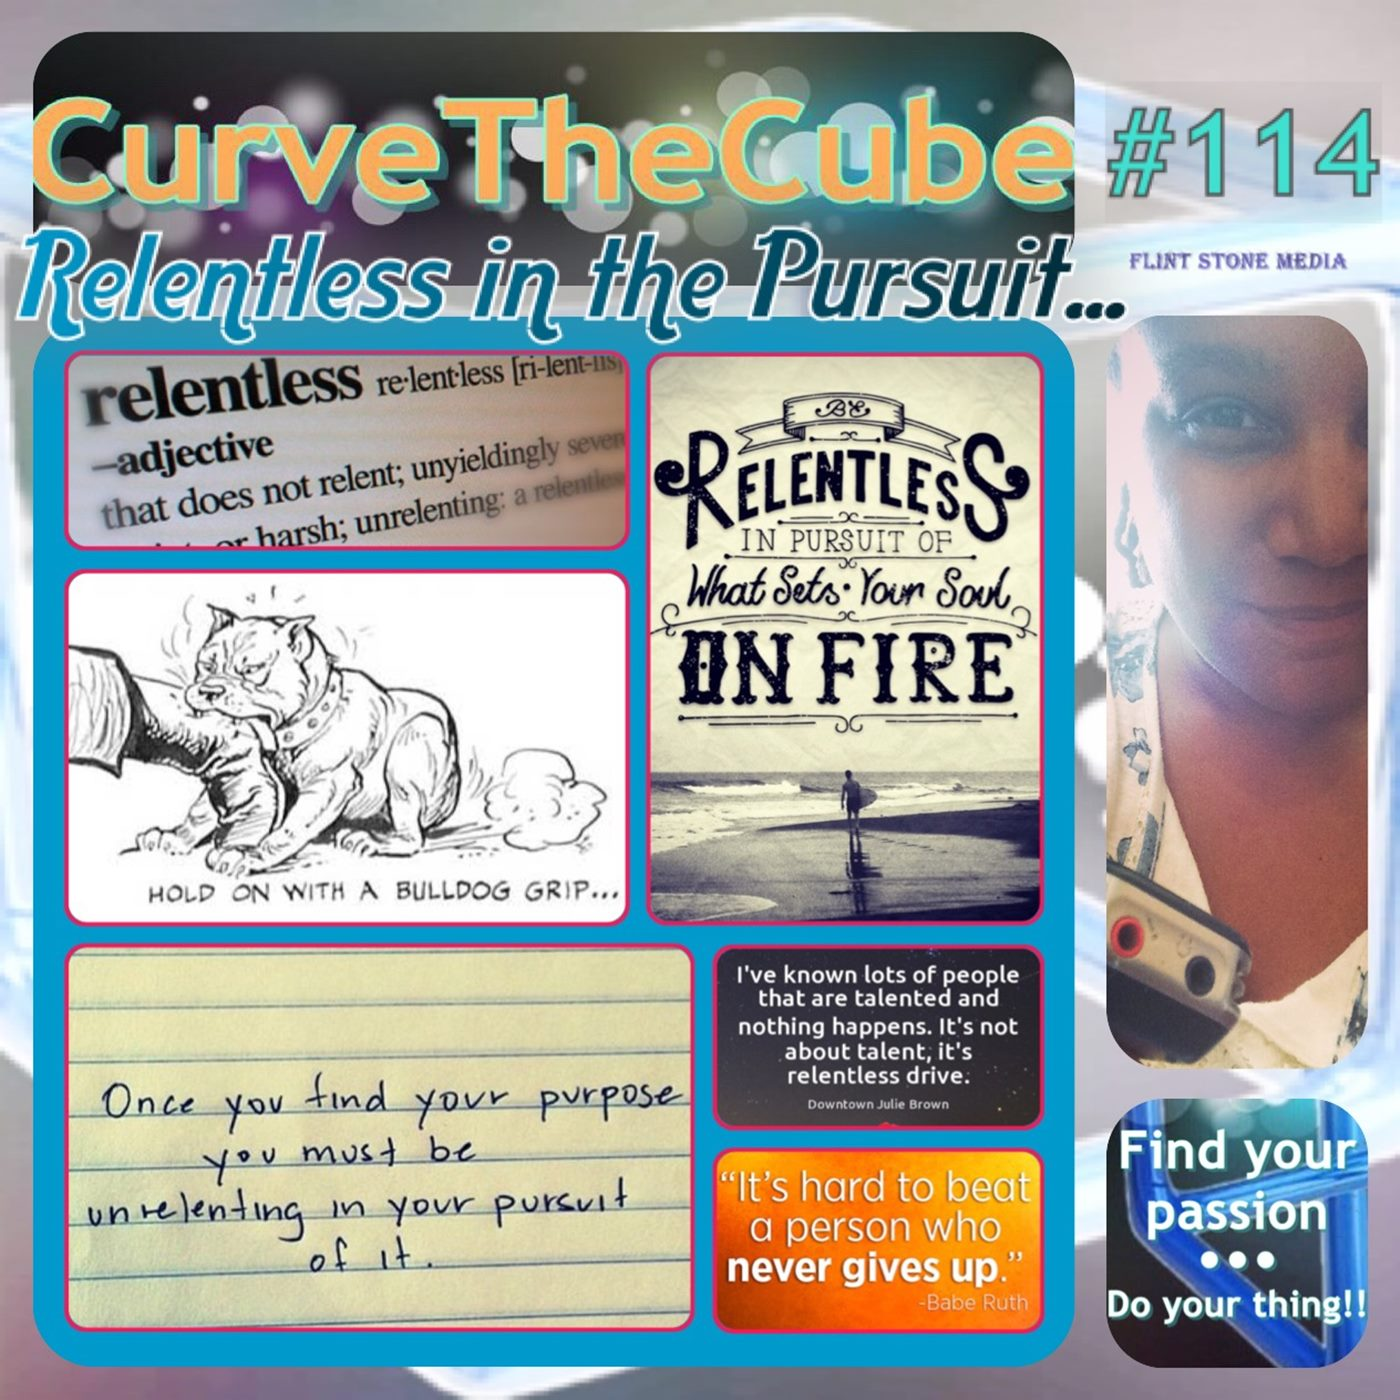 Be Relentless in the Pursuit of Your Dreams with the Curve the Cube Podcast